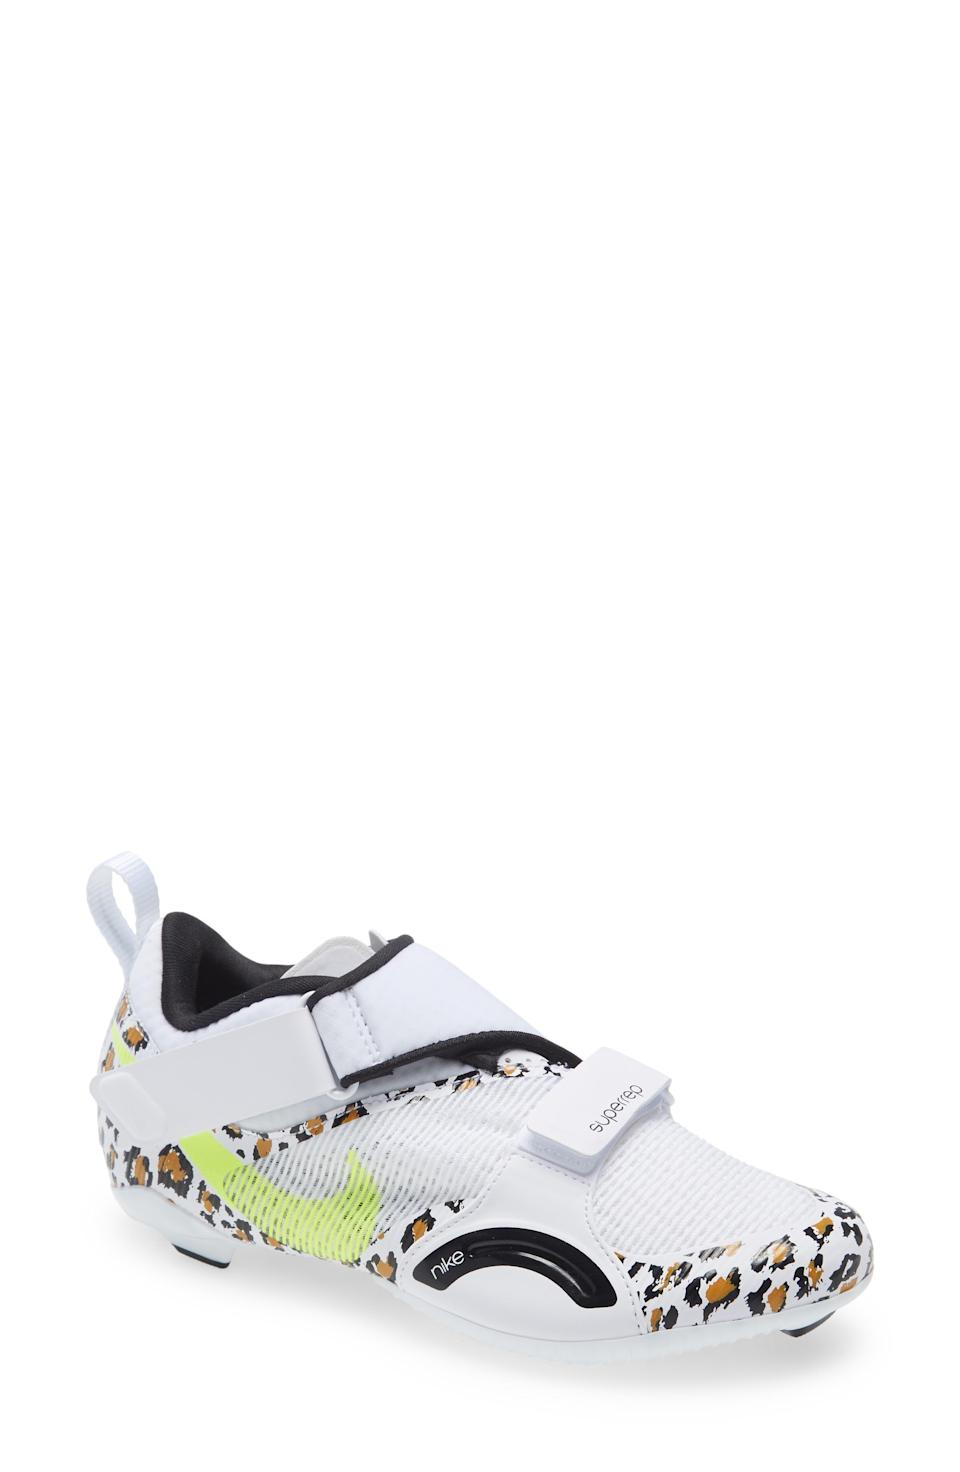 """<p><strong>NIKE</strong></p><p>nordstrom.com</p><p><strong>$120.00</strong></p><p><a href=""""https://go.redirectingat.com?id=74968X1596630&url=https%3A%2F%2Fwww.nordstrom.com%2Fs%2Fnike-superrep-cycle-shoe-women%2F5436365&sref=https%3A%2F%2Fwww.womenshealthmag.com%2Ffitness%2Fg37001763%2Fpeloton-shoes%2F"""" rel=""""nofollow noopener"""" target=""""_blank"""" data-ylk=""""slk:Shop Now"""" class=""""link rapid-noclick-resp"""">Shop Now</a></p><p>If you want to go with a tried-and-true brand pick, you might want to check out these (super cute) Nike SuperRep shoes. Lightweight, breathable, and designed with easy Velcro straps, the shoe comes in mint green, hyper crimson, and a clean and simple white.</p><p><strong>Reviewer rave: </strong>""""A+ cycle shoe for my Peloton. I love them. Tons of cushion and good support."""" <em>— lovejlove14, nordstrom.com</em><br></p>"""